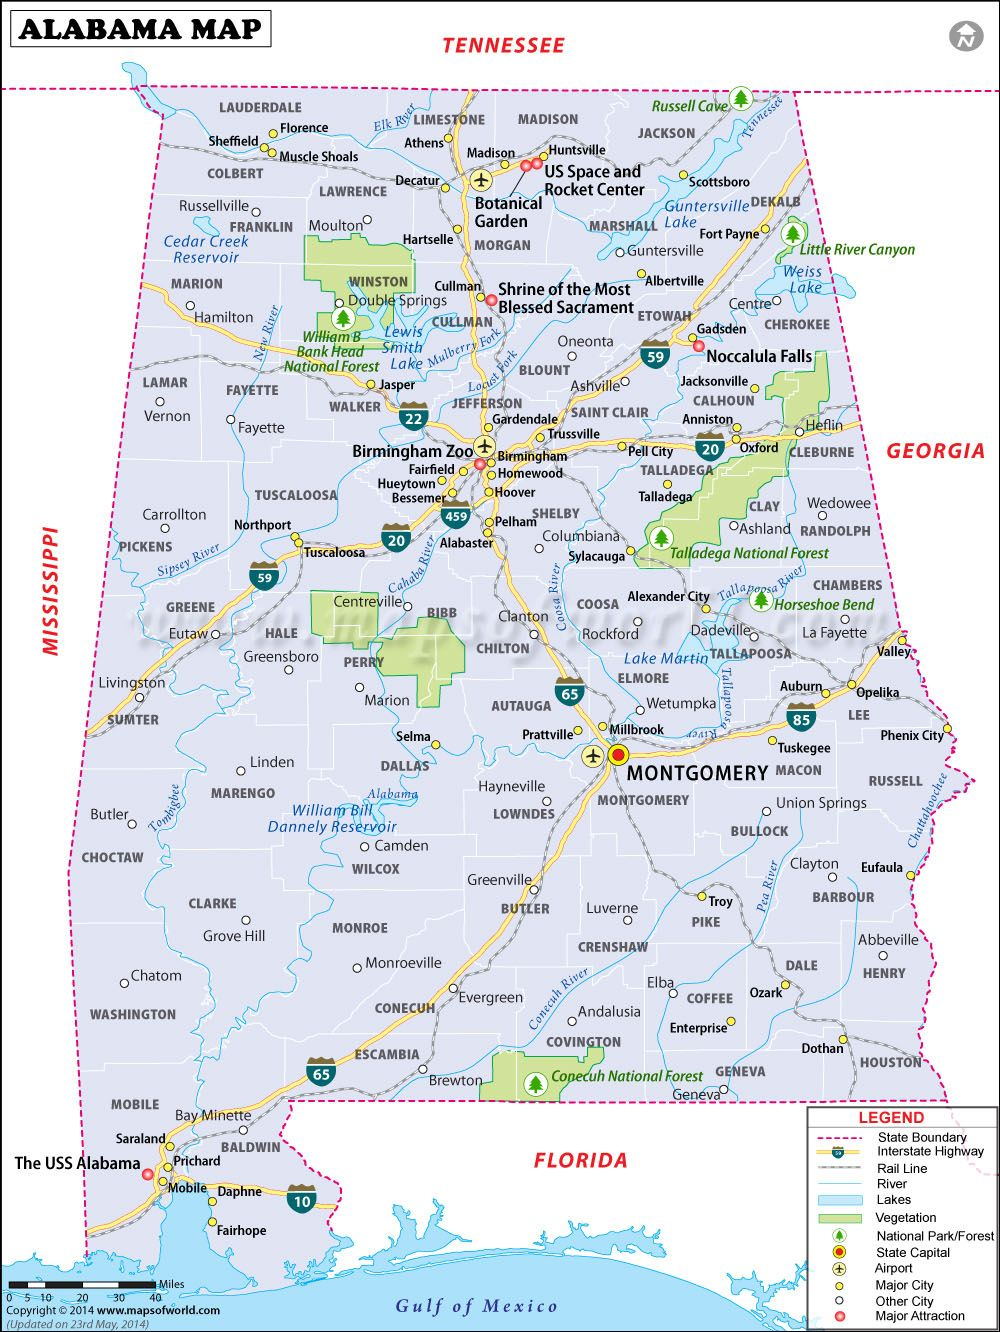 Alabama Map For Free Download Printable Map Of Alabama Known As - Usa airports on the map